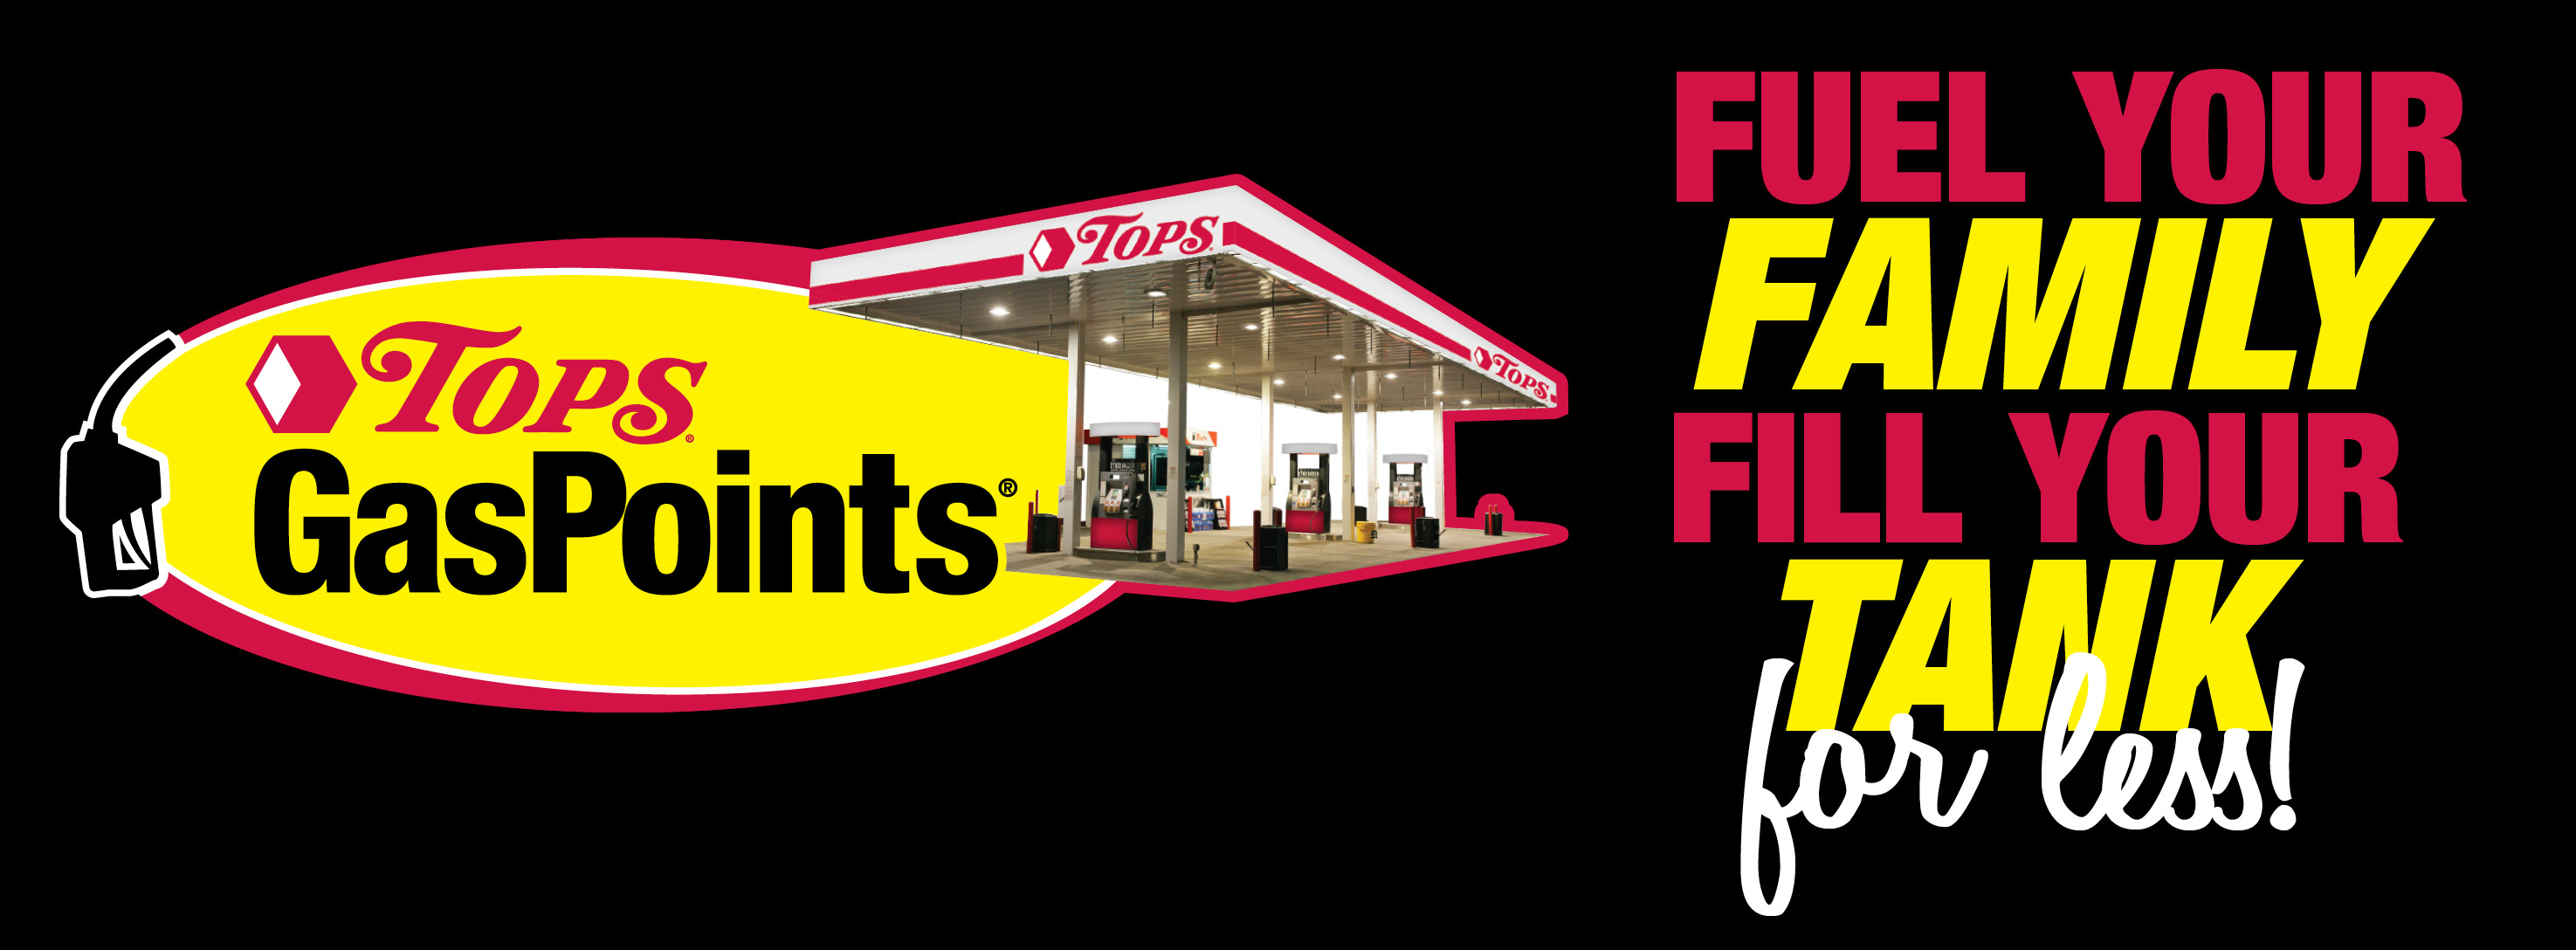 Fuel Your Family Fill Your Tank for less!